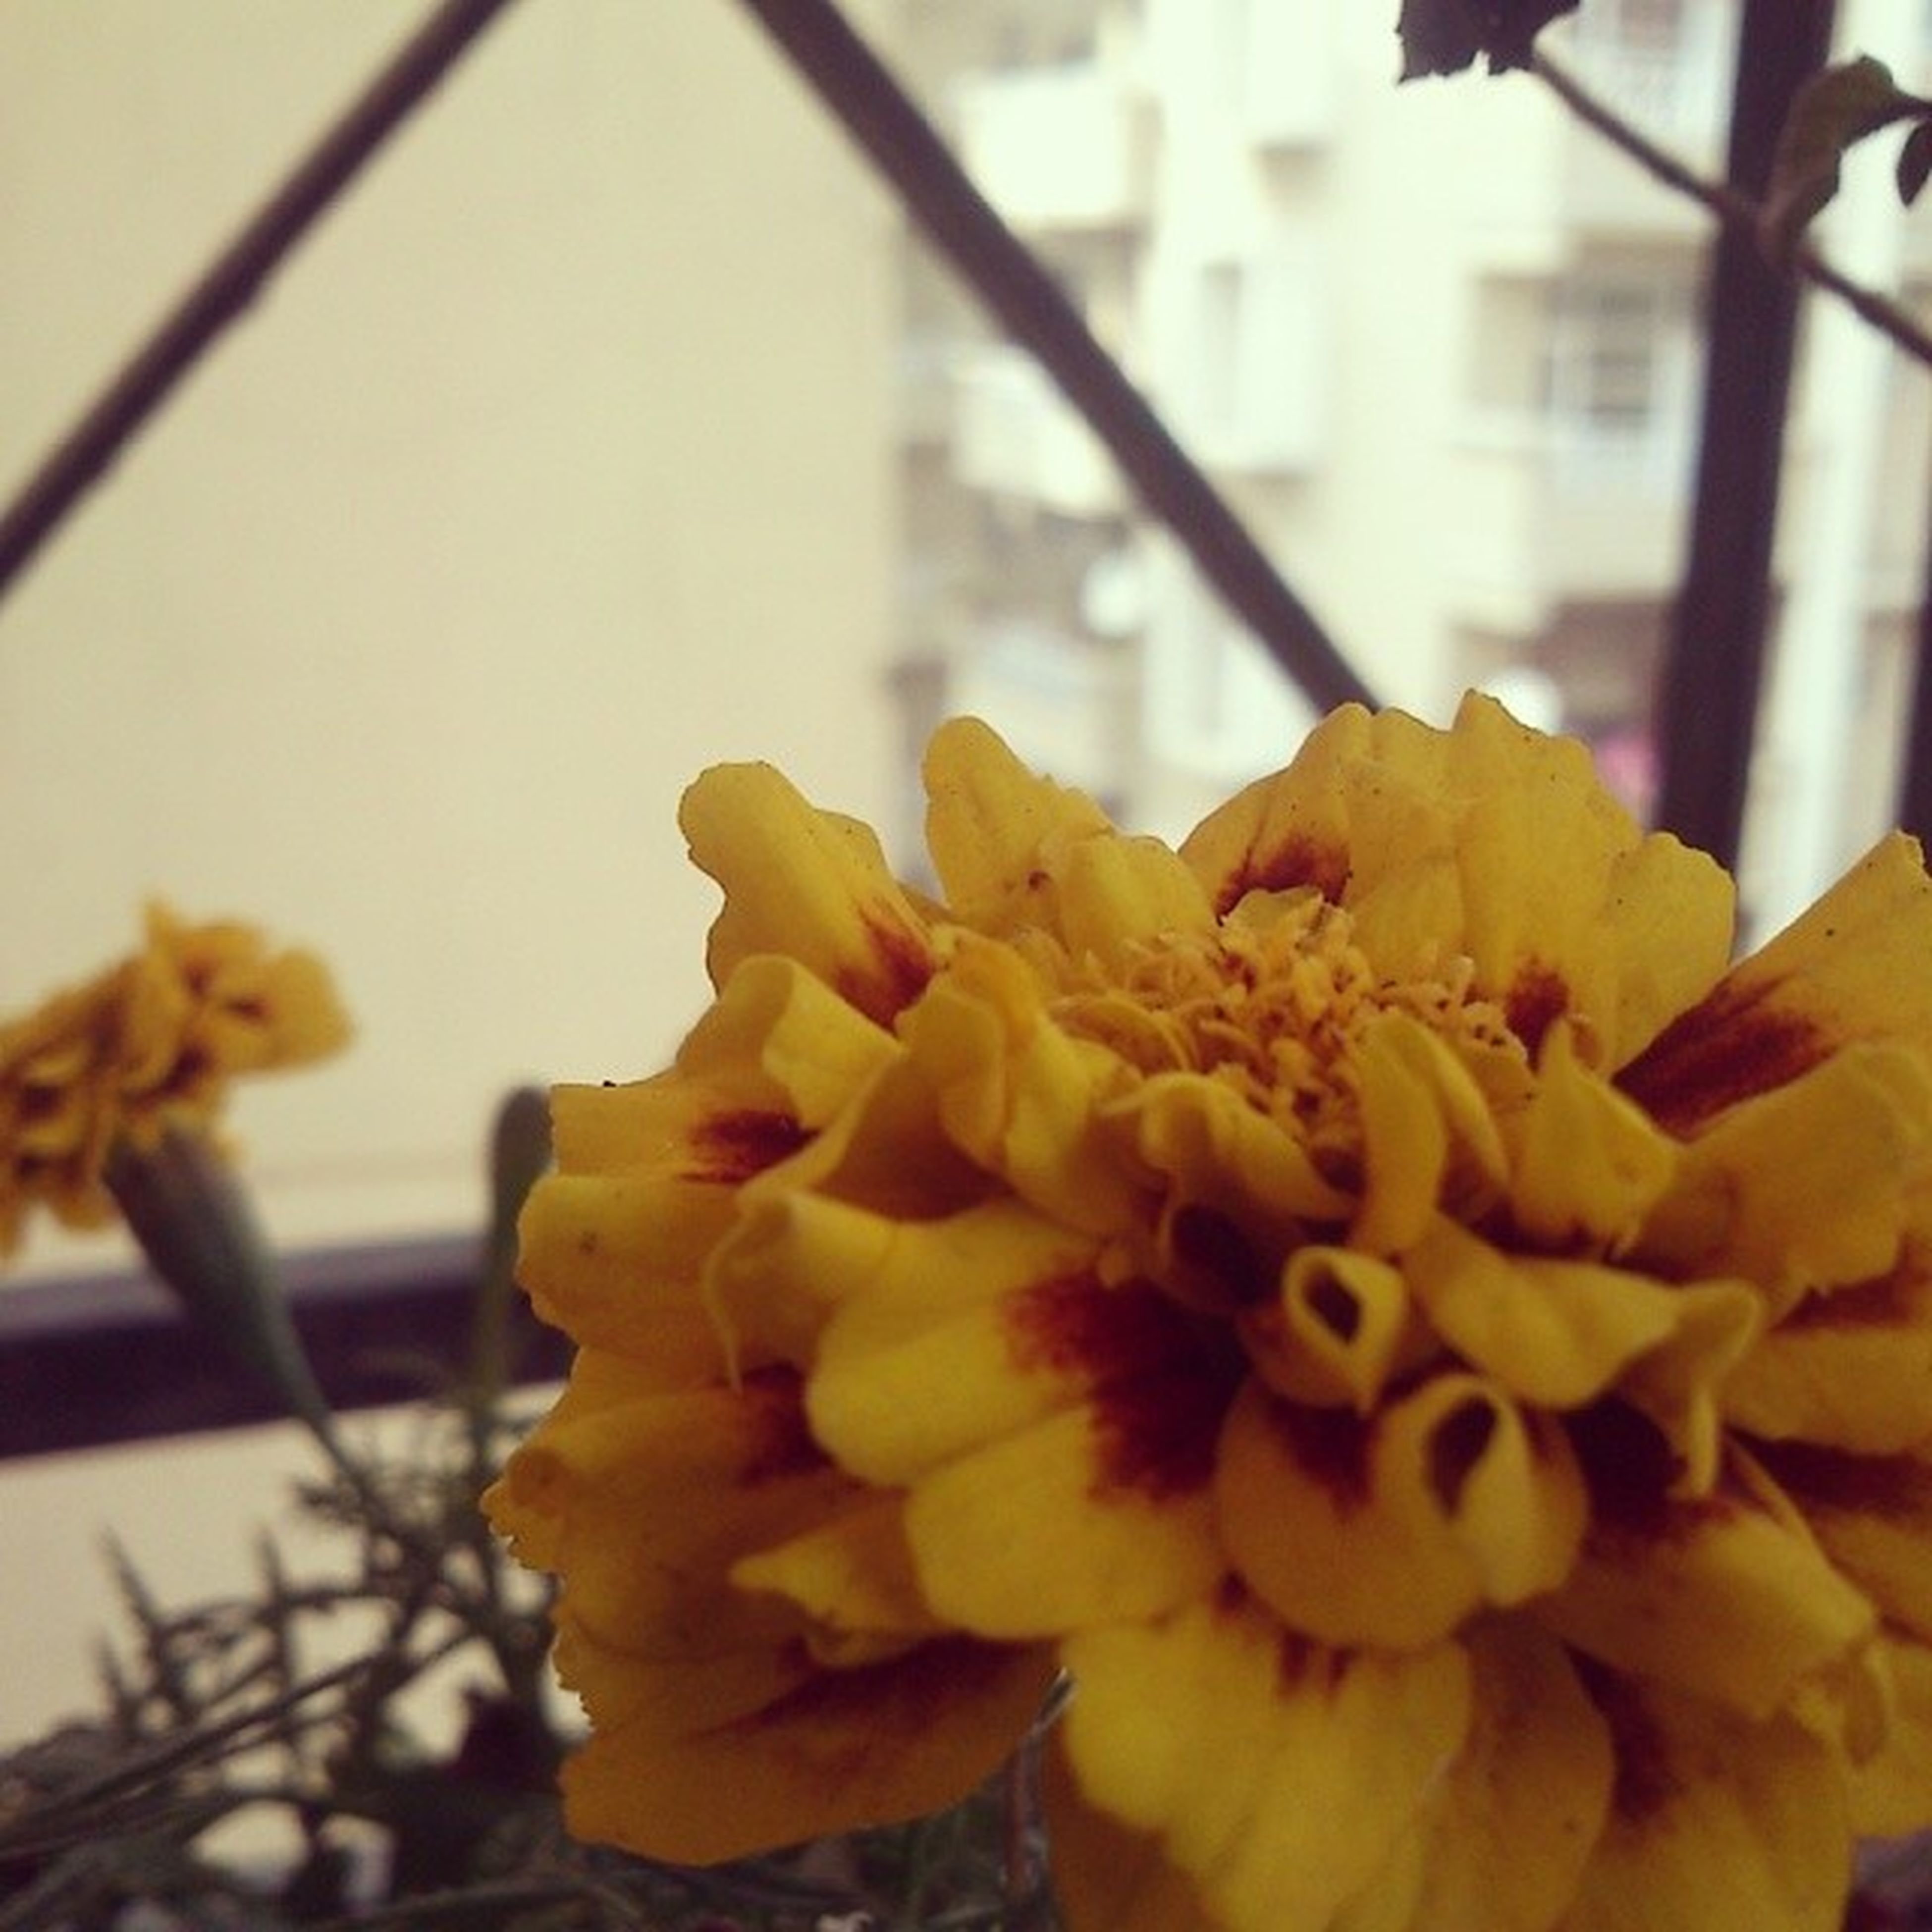 Masterclick Macro Flowers Plant focus fragrance like share sharp clear awesome leaves pretty valencia morning instalike instacomt instagram instapic professional follow yellow red balcony india